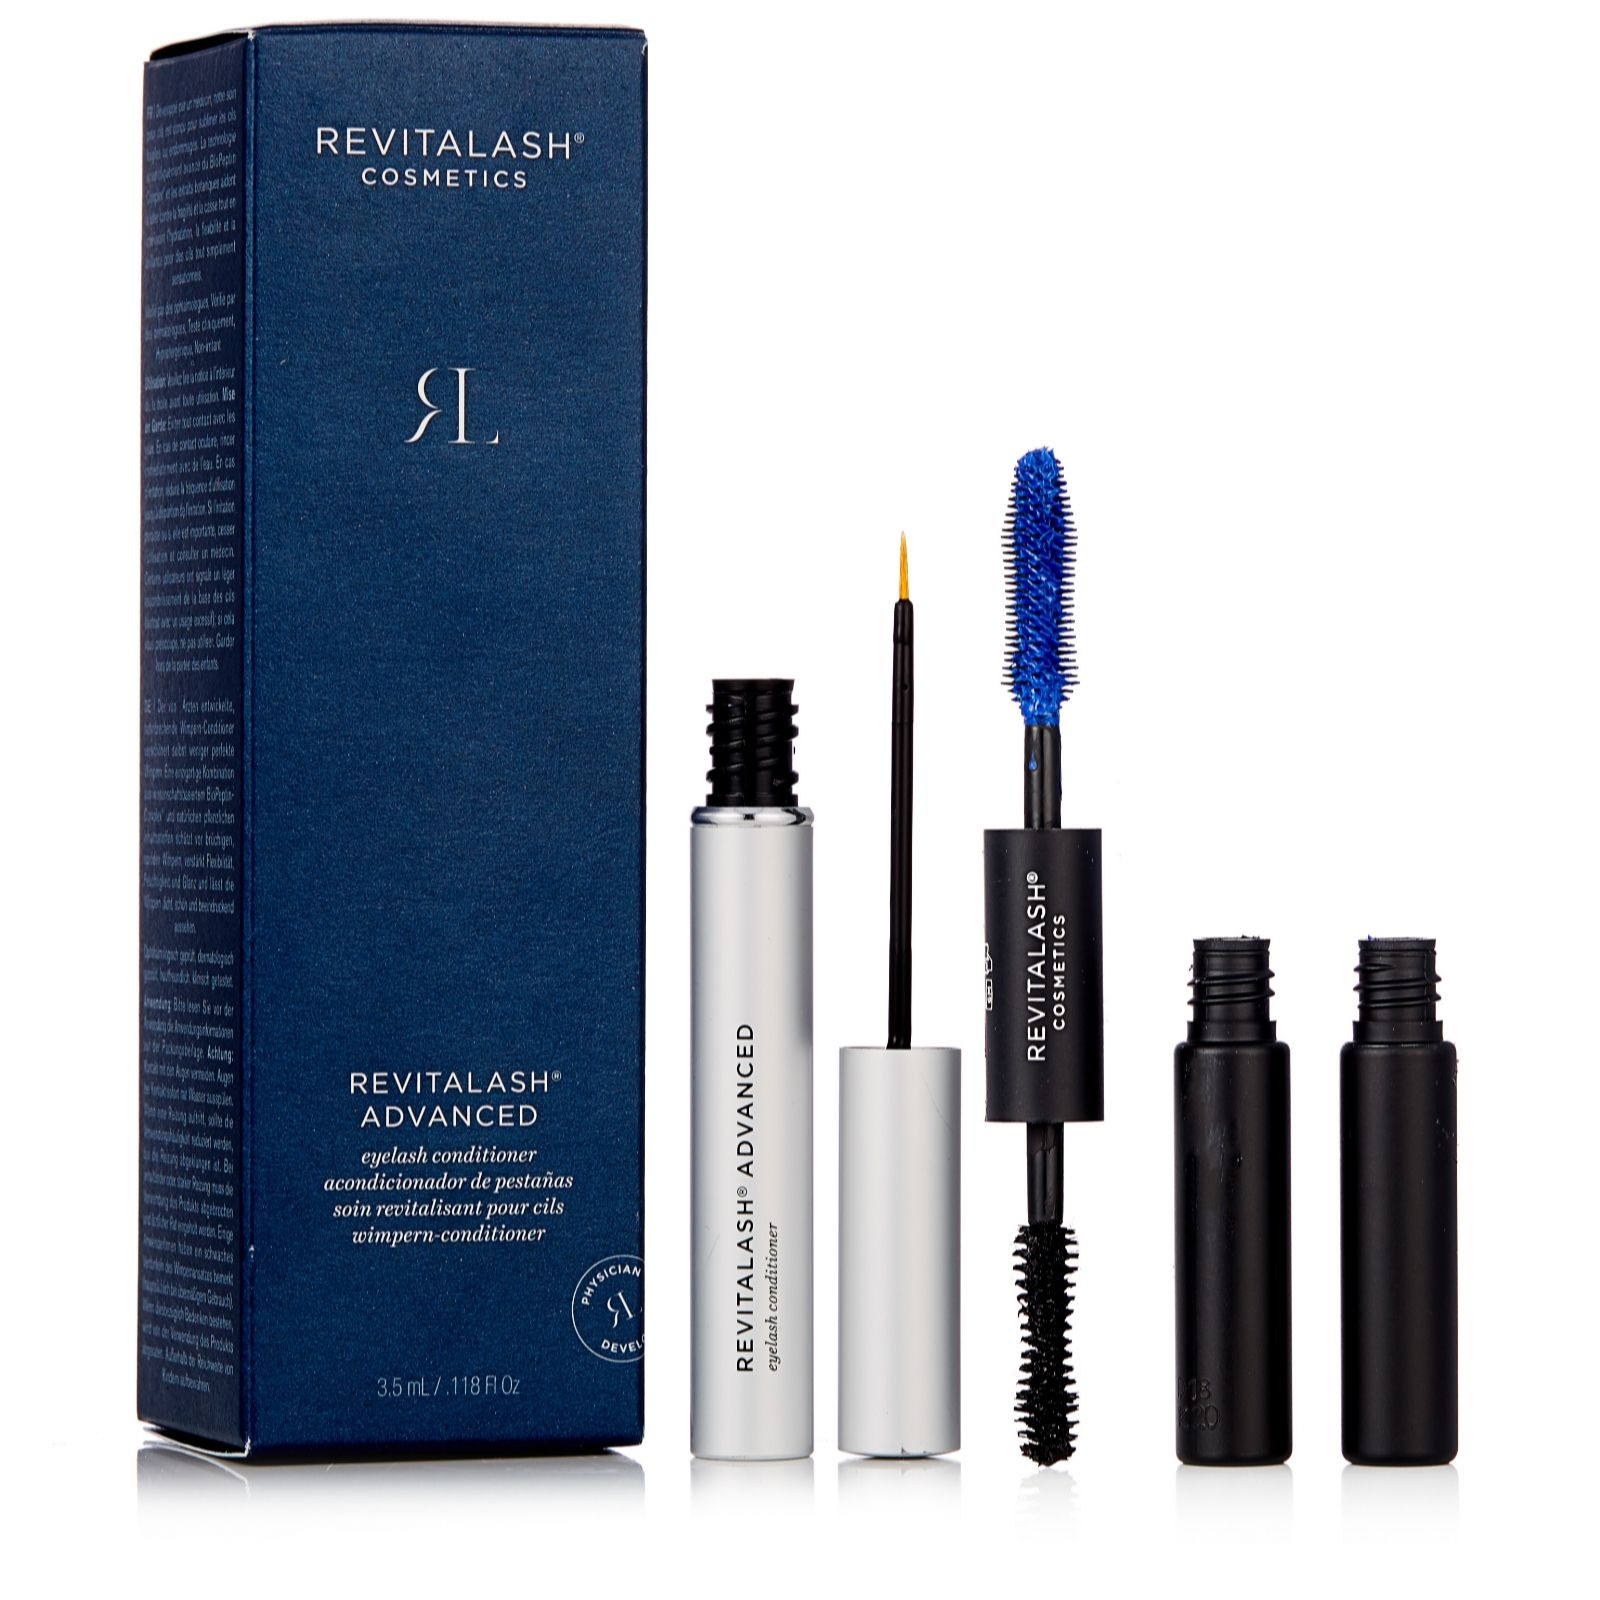 bd621d7ba69 Revitalash 3.5ml Lash Conditioner & 2.5ml Double Ended Primer & Mascara -  QVC UK